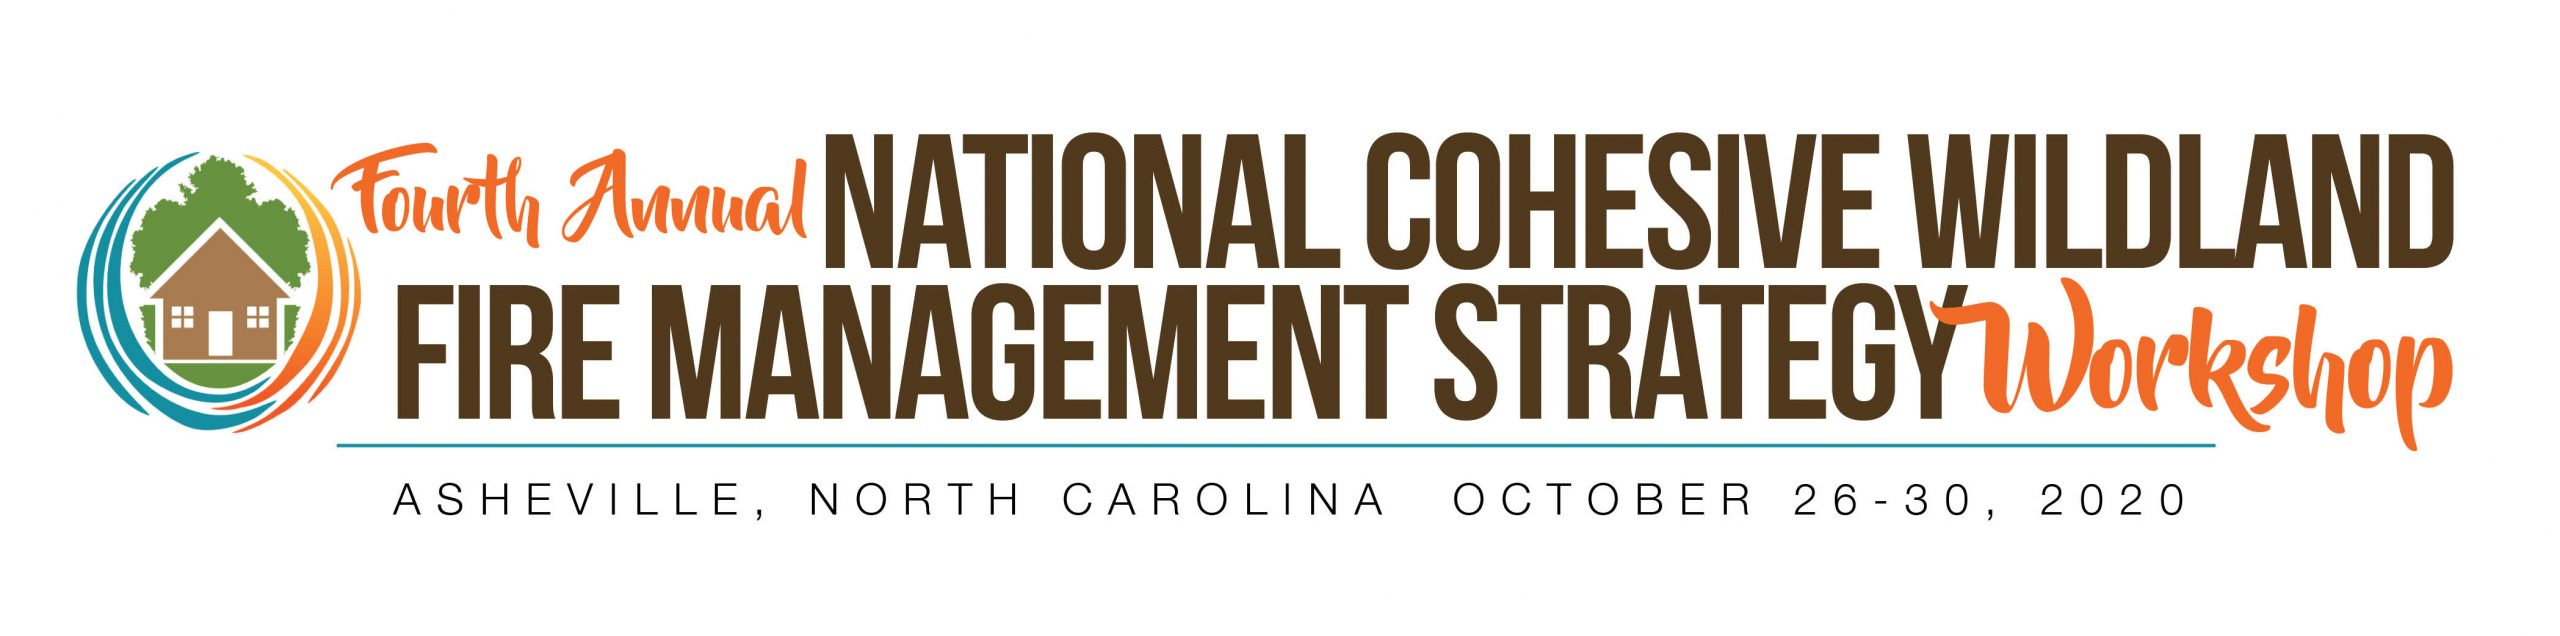 4th Annual National Cohesive Wildland Fire Management Strategy Workshop